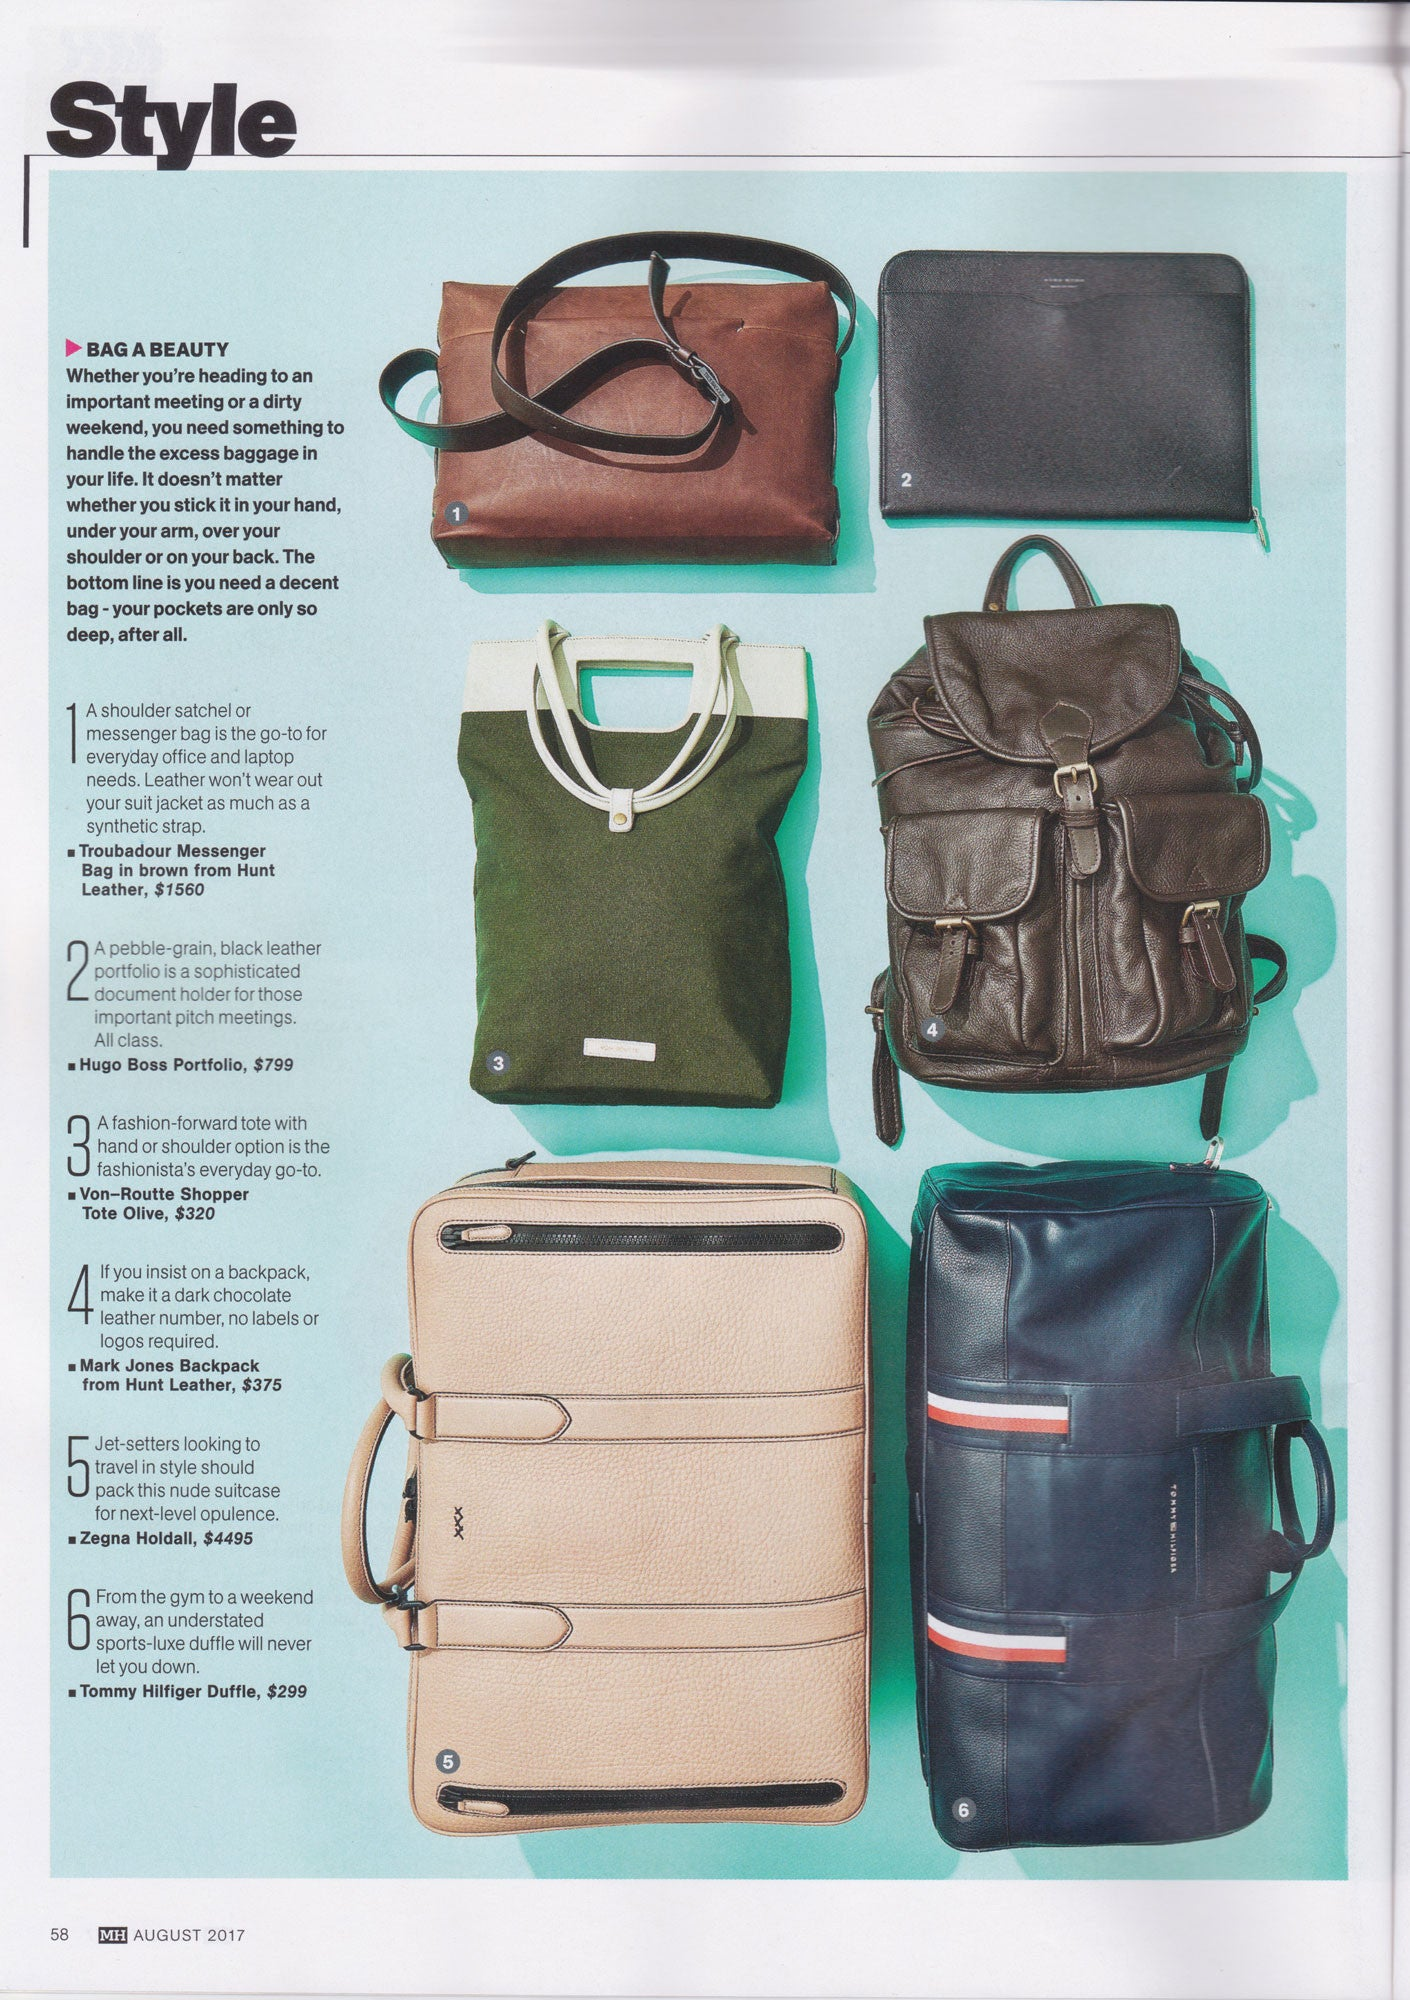 Ystad Shopper Tote Olive feature in Men's Health August 2017 issue